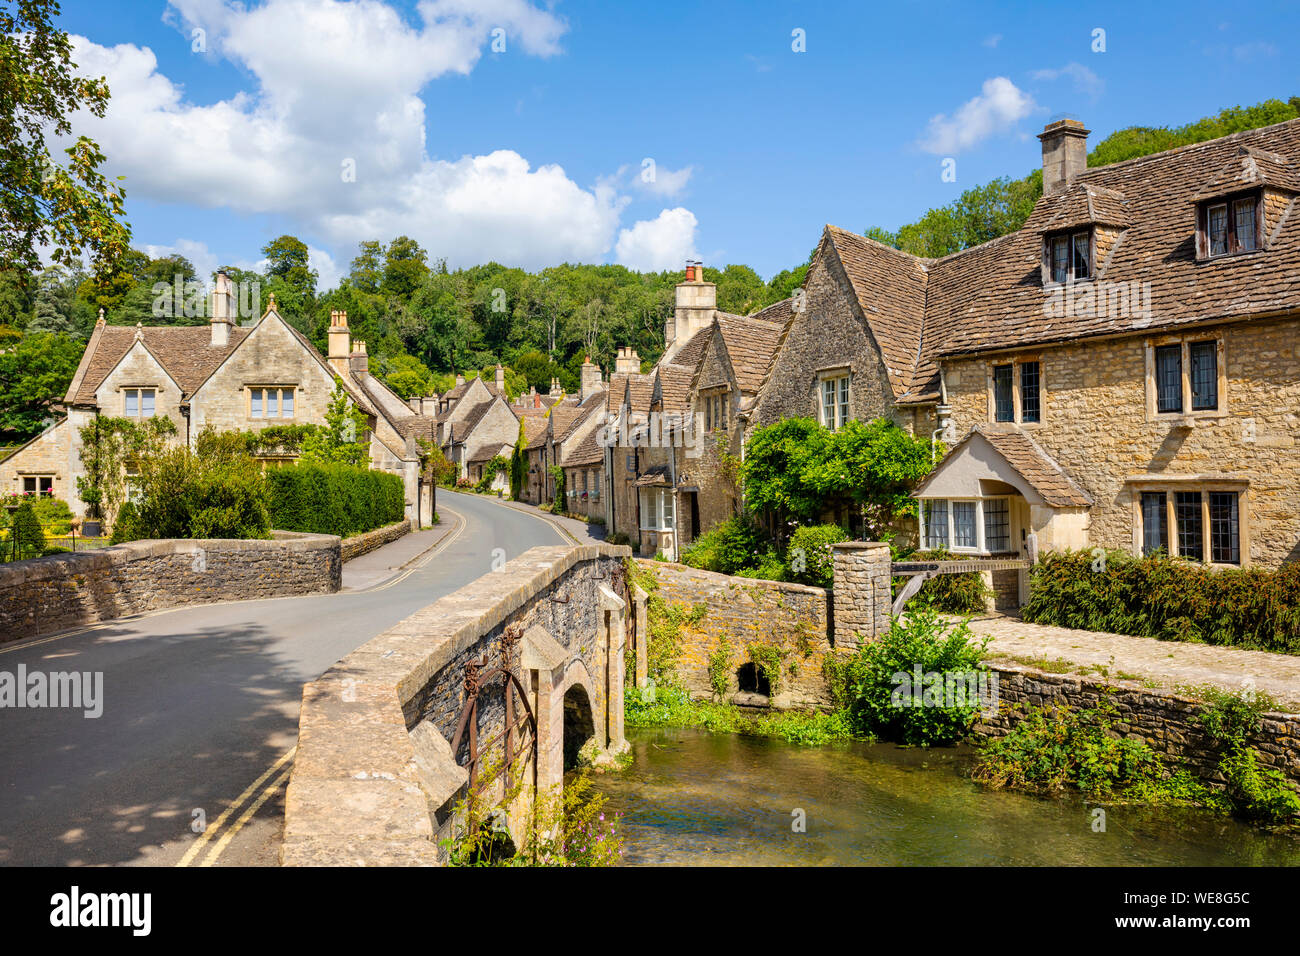 Castle Combe Water lane with bridge over the By brook on to The Street Castle Combe village Castle Combe Cotswolds Wiltshire england gb uk Europe Stock Photo